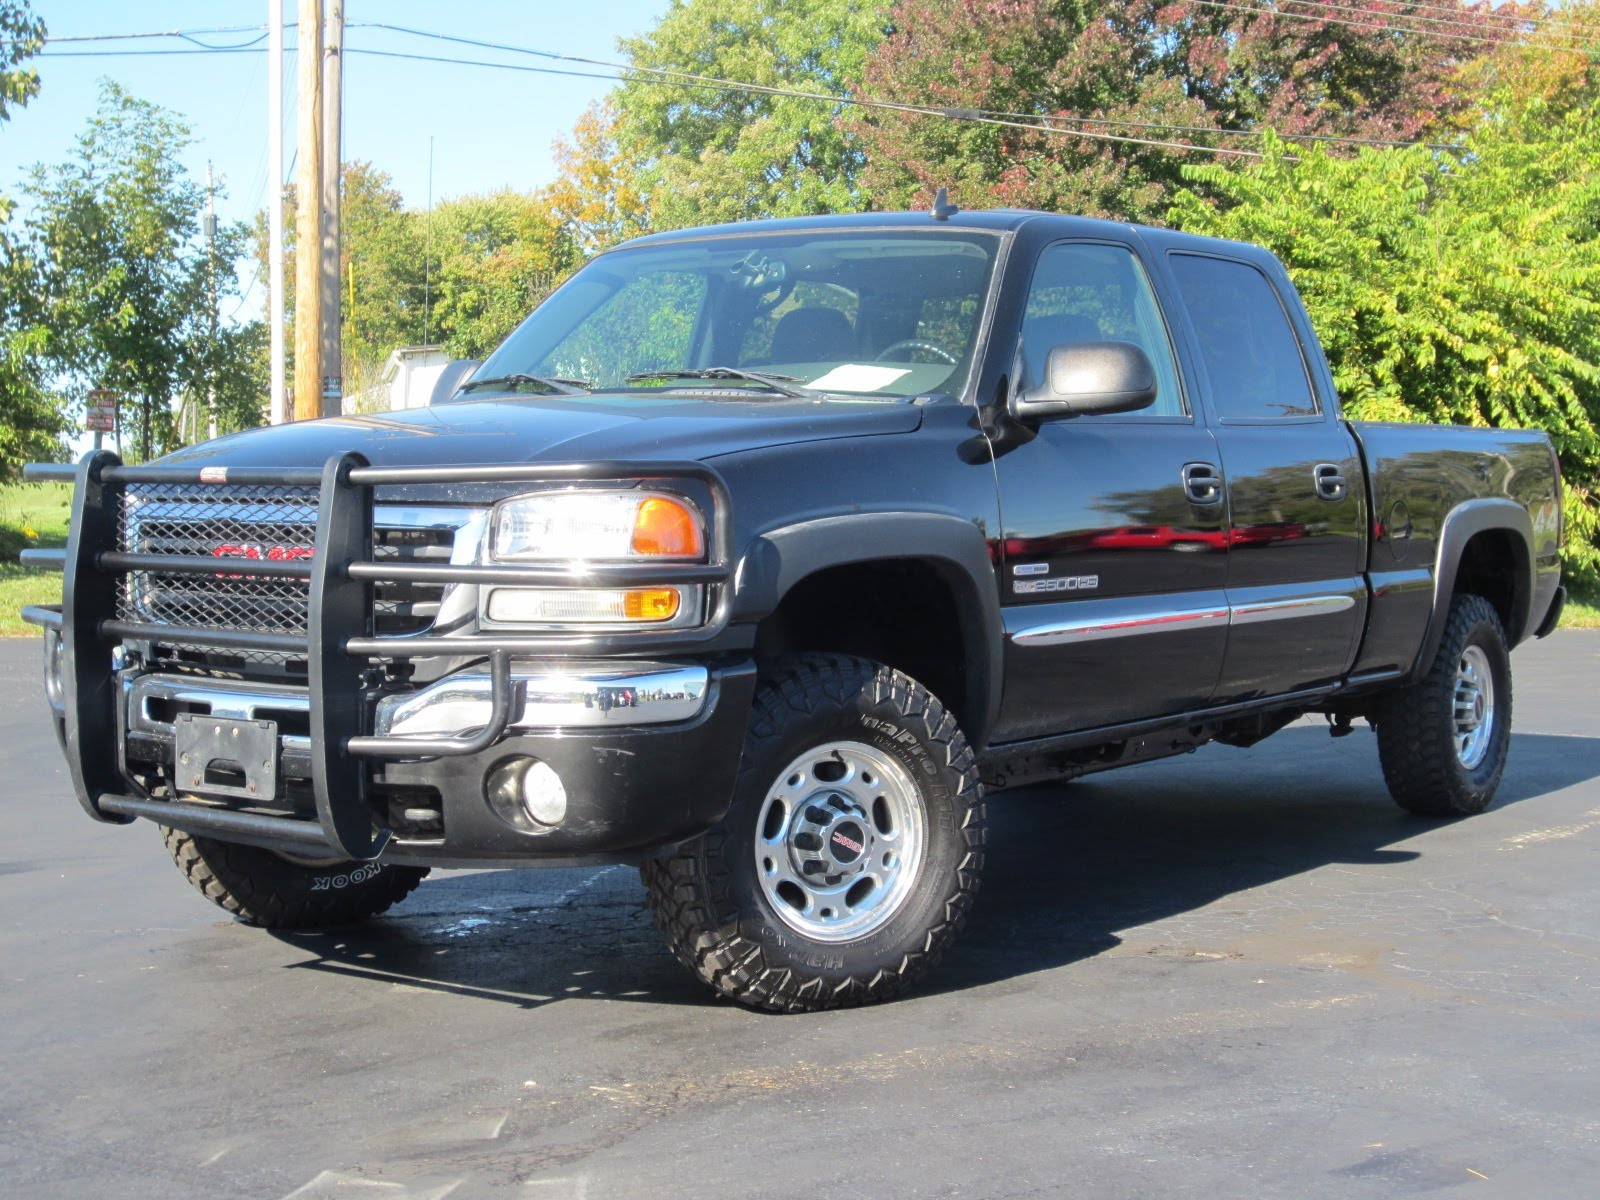 2006 GMC Sierra 2500hd #8